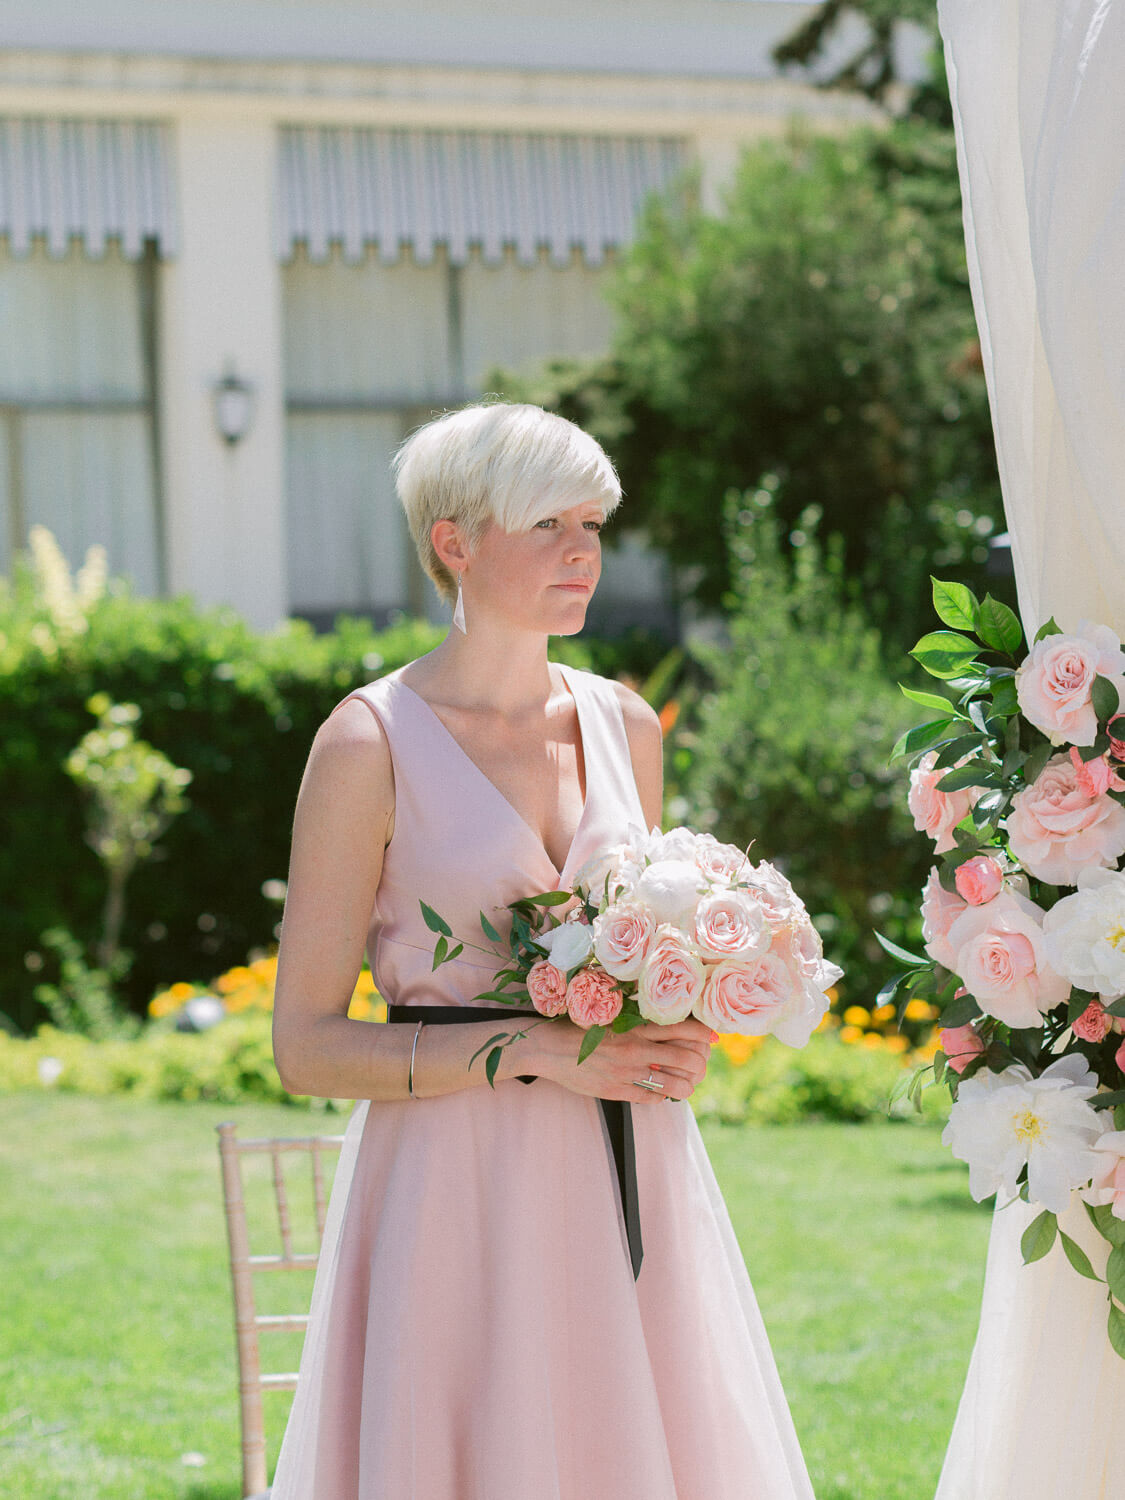 maid-of-honour holding bridal bouquet during a wedding ceremony in Hotel Palacio Estoril by Portugal Wedding Photographer